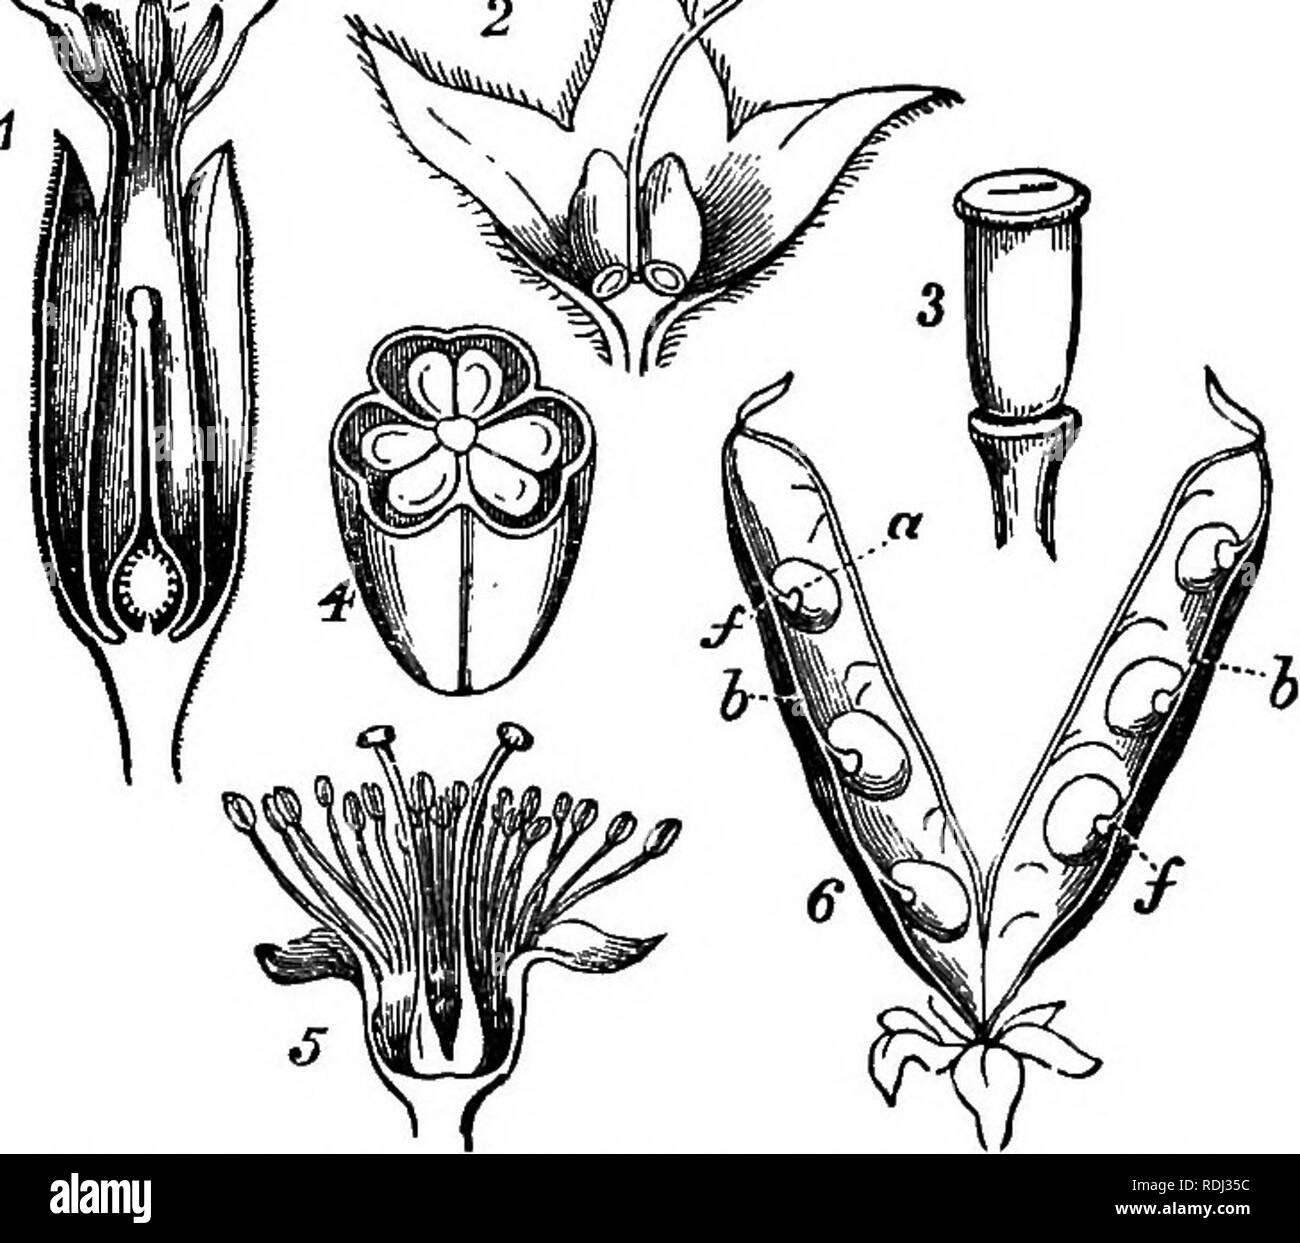 . Botany for academies and colleges: consisting of plant development and structure from seaweed to clematis. Botany; 1889. THE FLOWER DEFINED.THE EMBRYO. the Embryonic Vesicle (Fig. 3, A, ve), which becomes the embryo. All the other parts of the ovule, as well as of the plant, consist of many united cells; but this vesicle, before fertilization, is a simple cell, like the spore in Cryp- togamia. At first it has a neck called Suspensor, as in the figures in C ; but this suspensor soon disappears, except in Gymnosperms, in which it persists. 19. The Male Flower in Phanerogamia is called an An-  - Stock Image